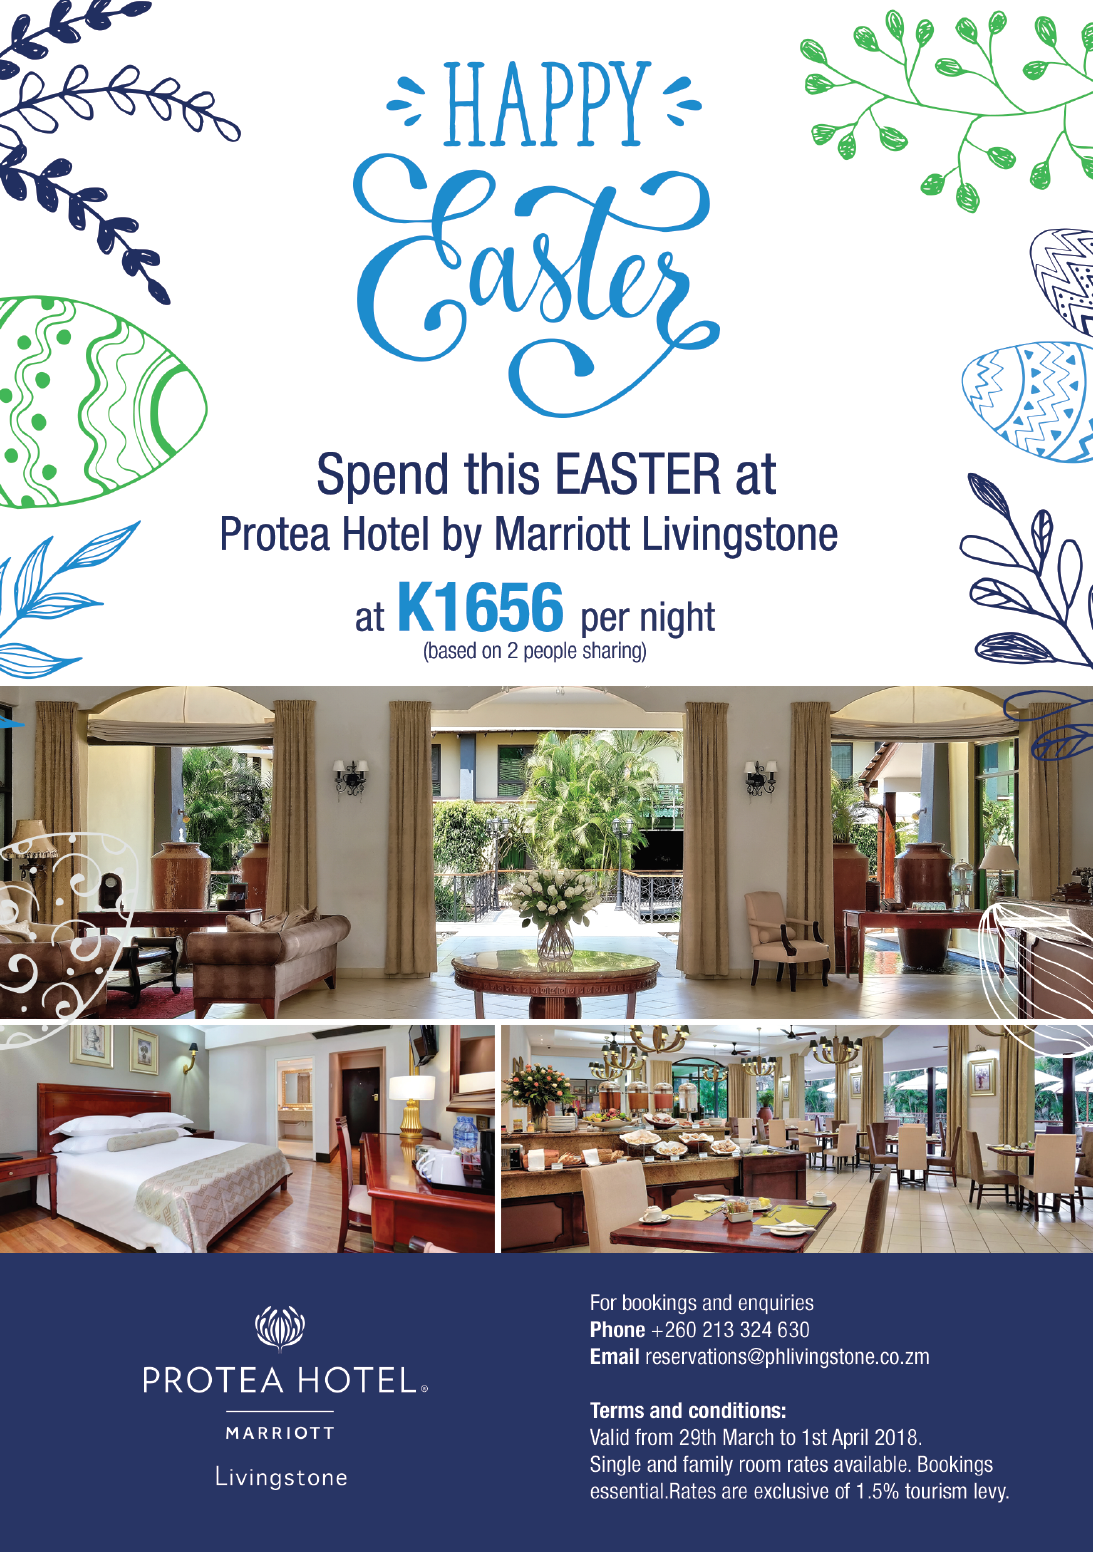 Protea hotel by marriott livingstone easter for Hotel week end